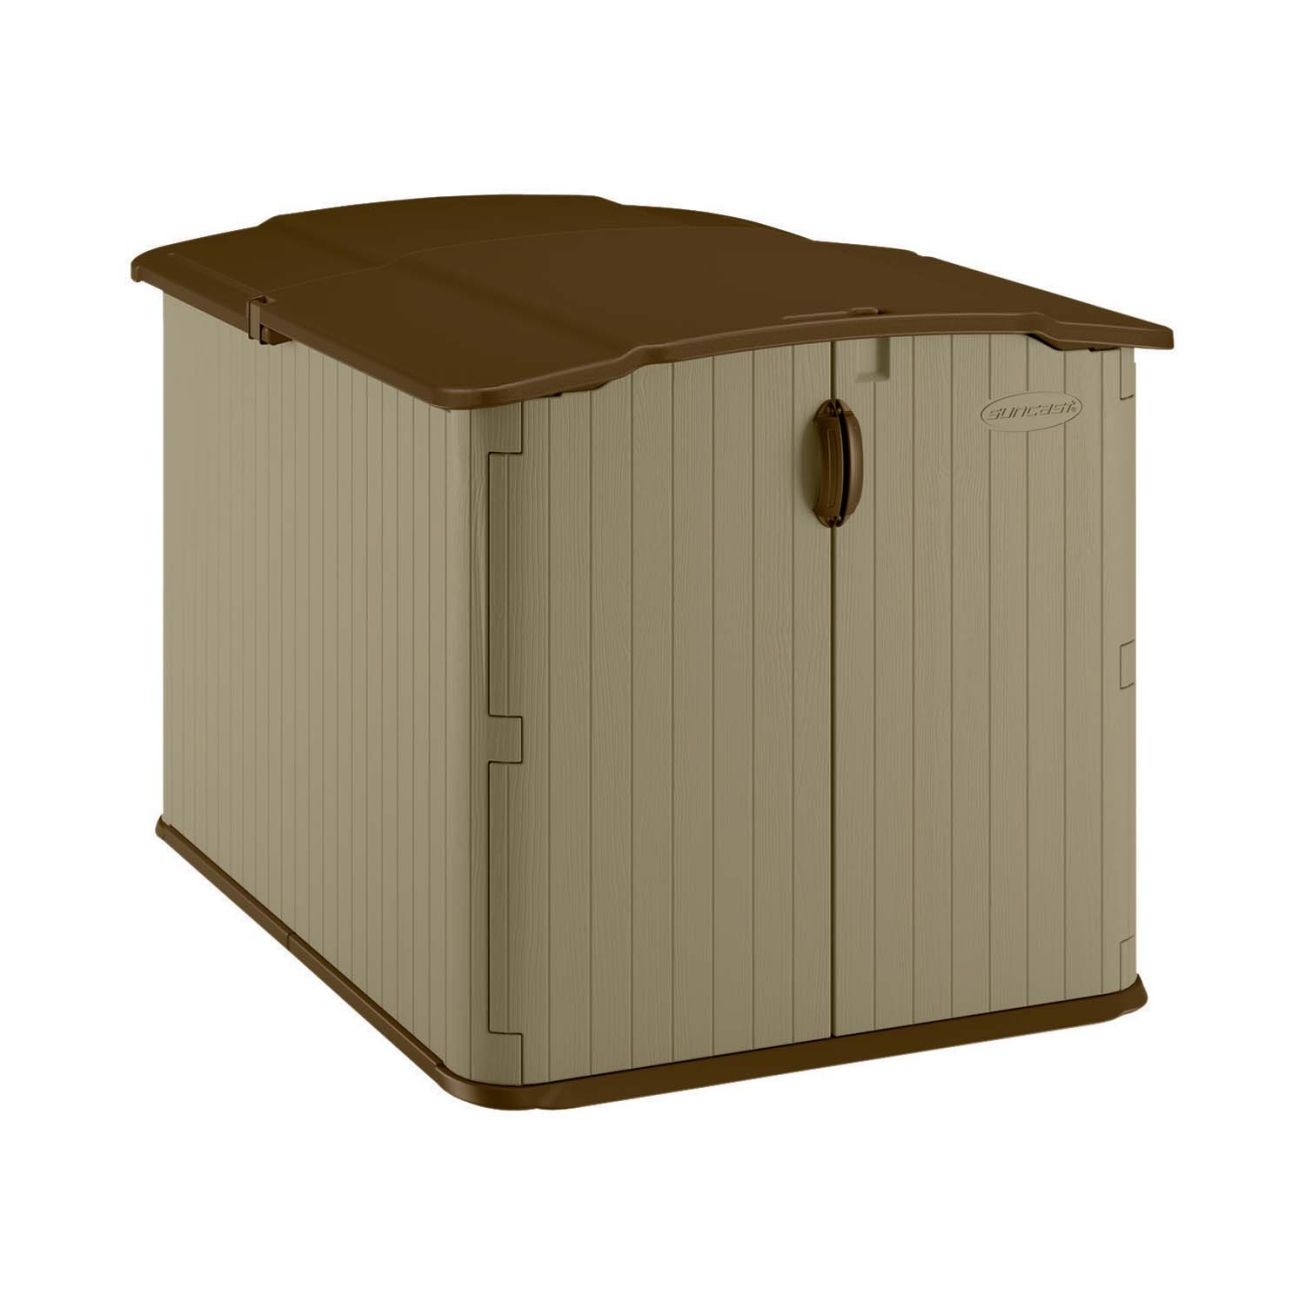 Suncast Glidetop Horizontal Shed Bms4900 Storage Sheds Resin Outdoor Storage Patio Furniture Storage Shed Storage